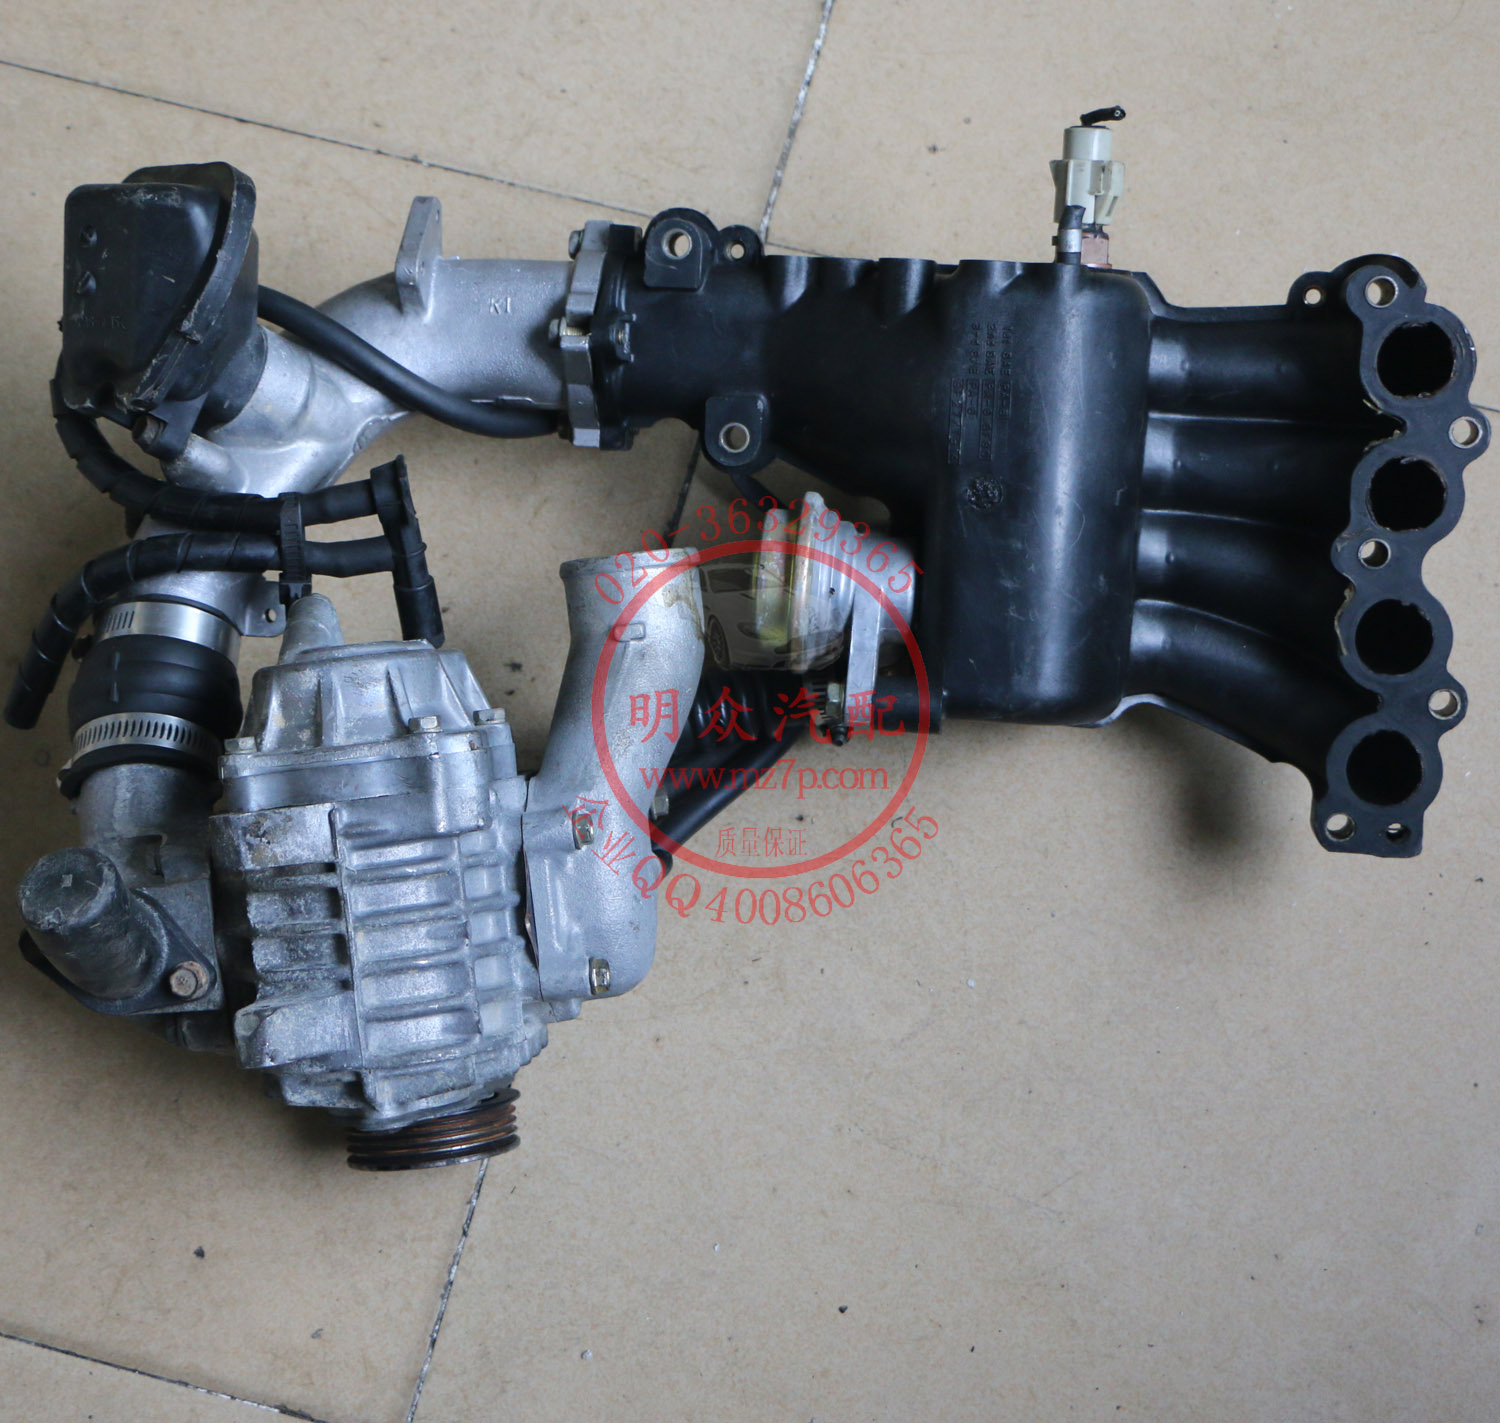 Vw Passat V6 Supercharger Kit: Adapted AMR300 Supercharger With Pressure Relief Valve Kit